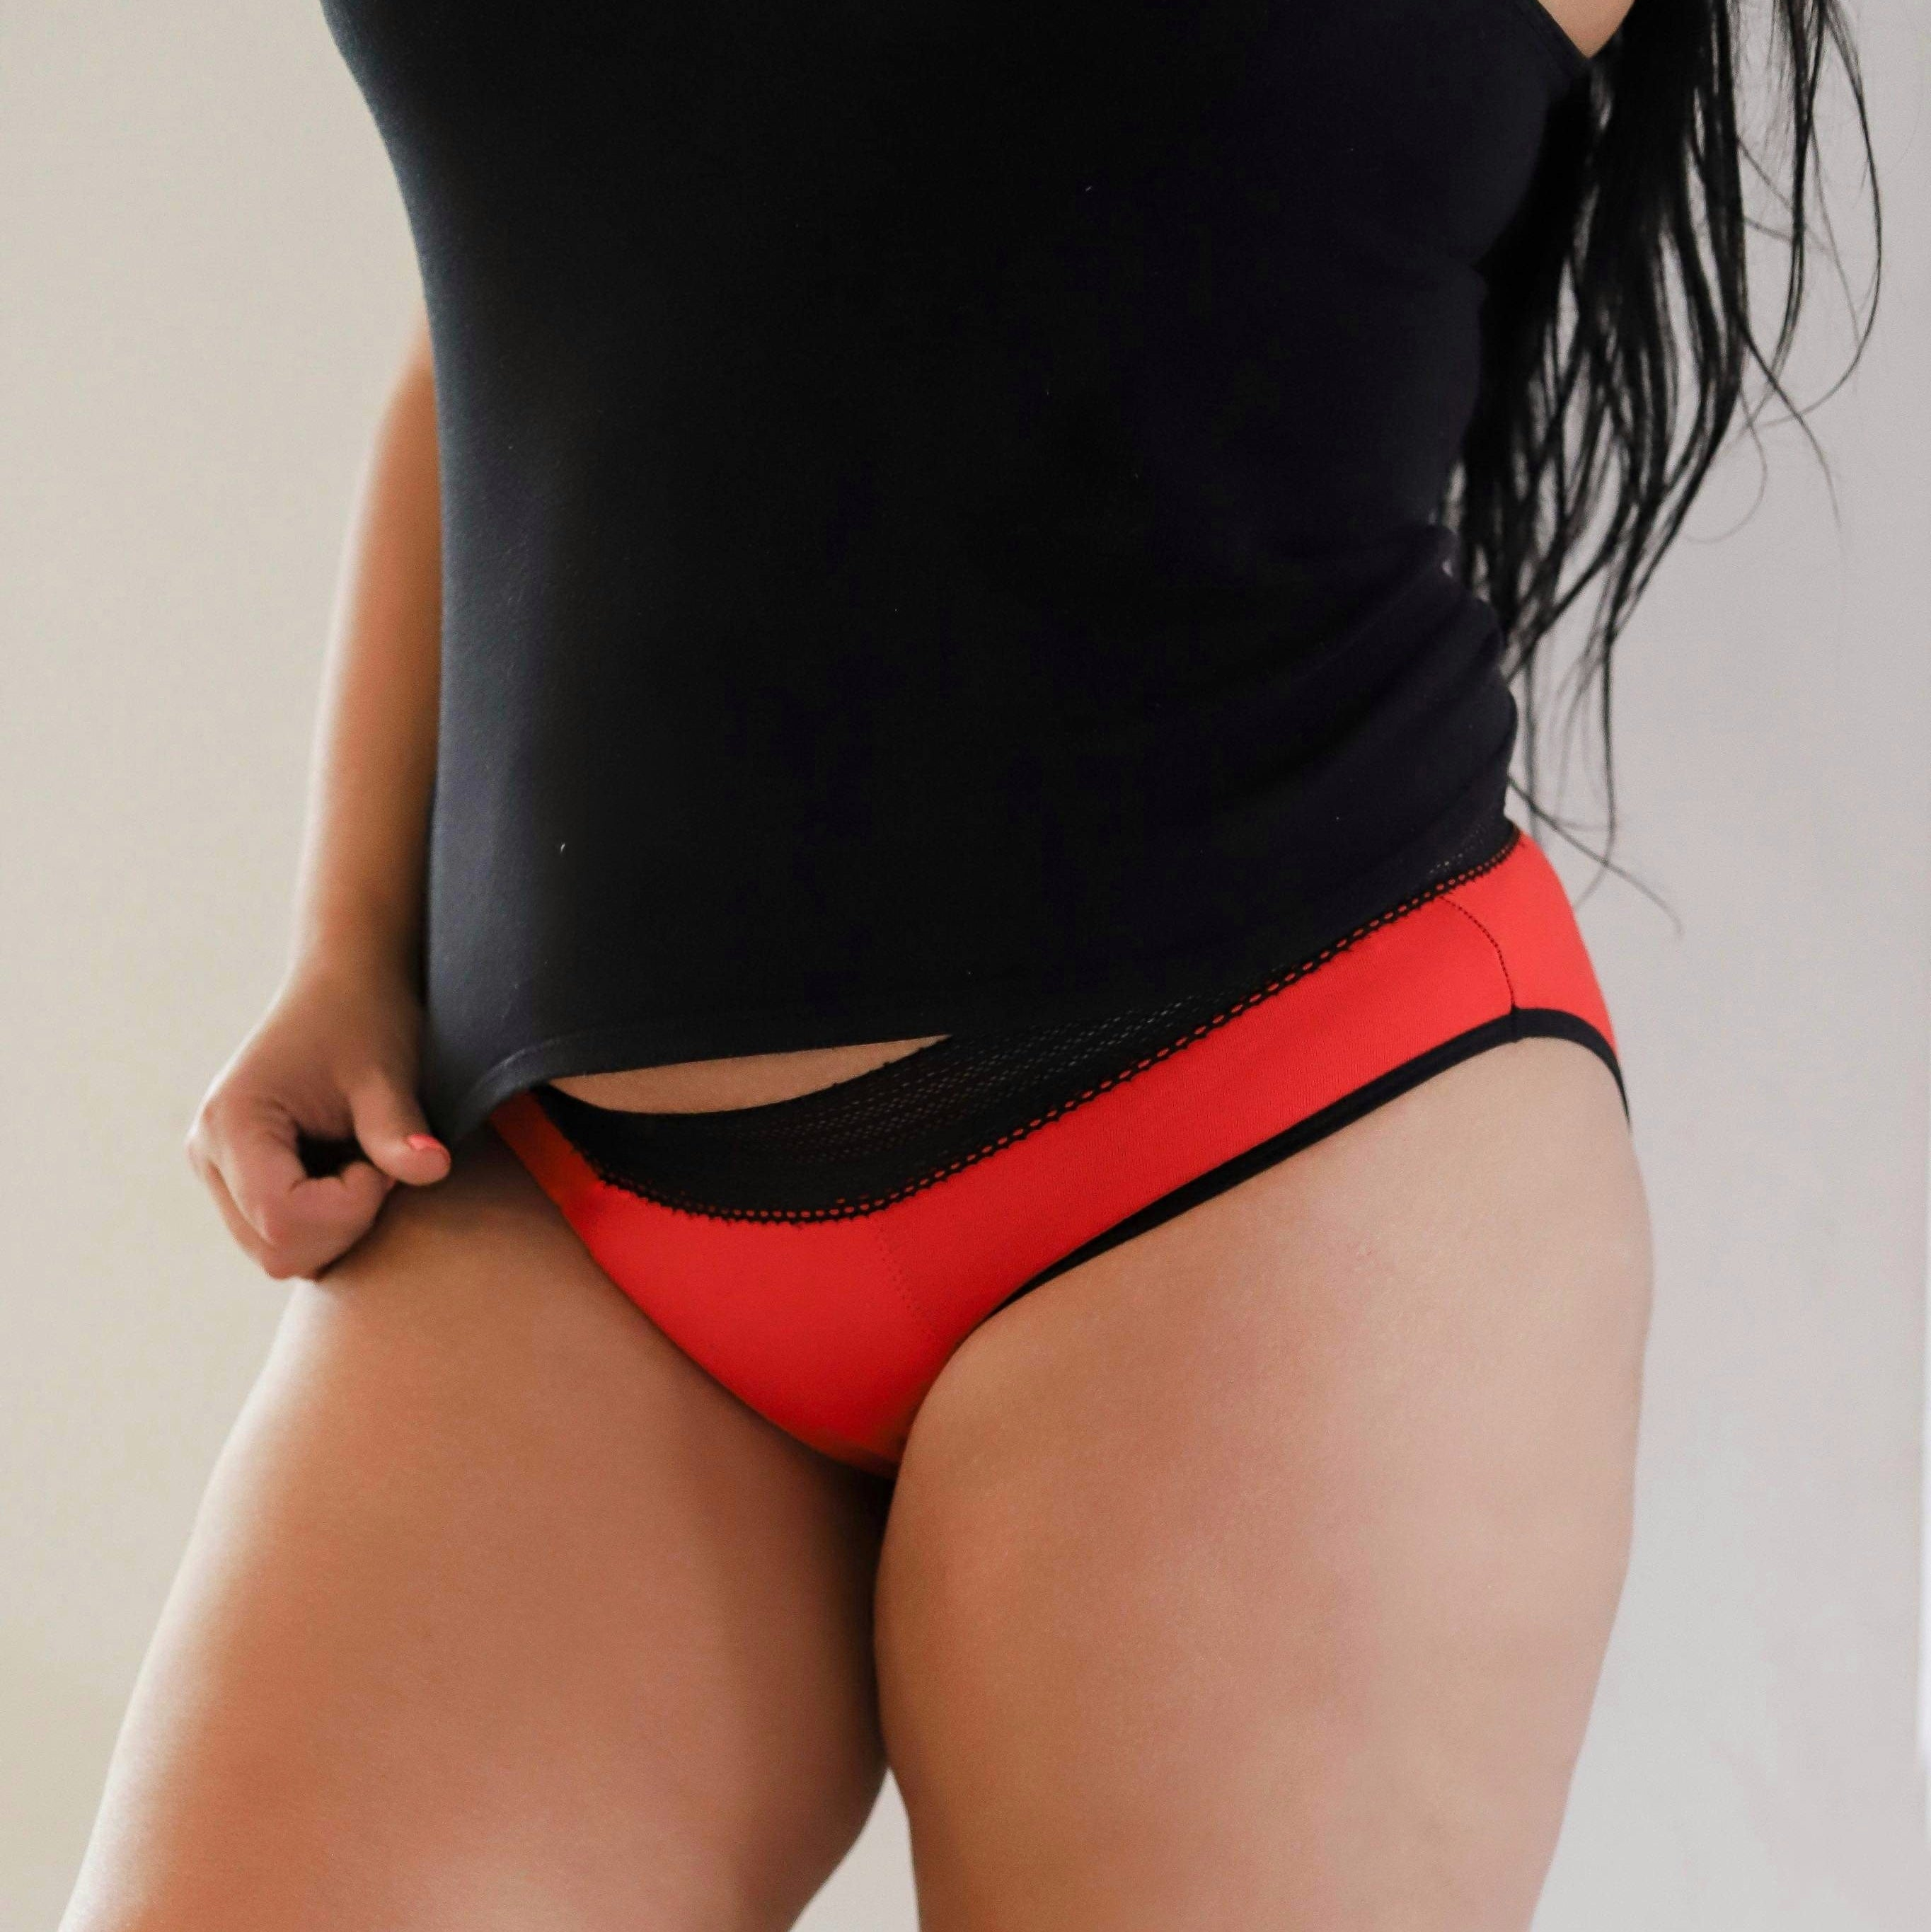 Lace Free2BU Underwear - Boho Babes Cloth Nappies